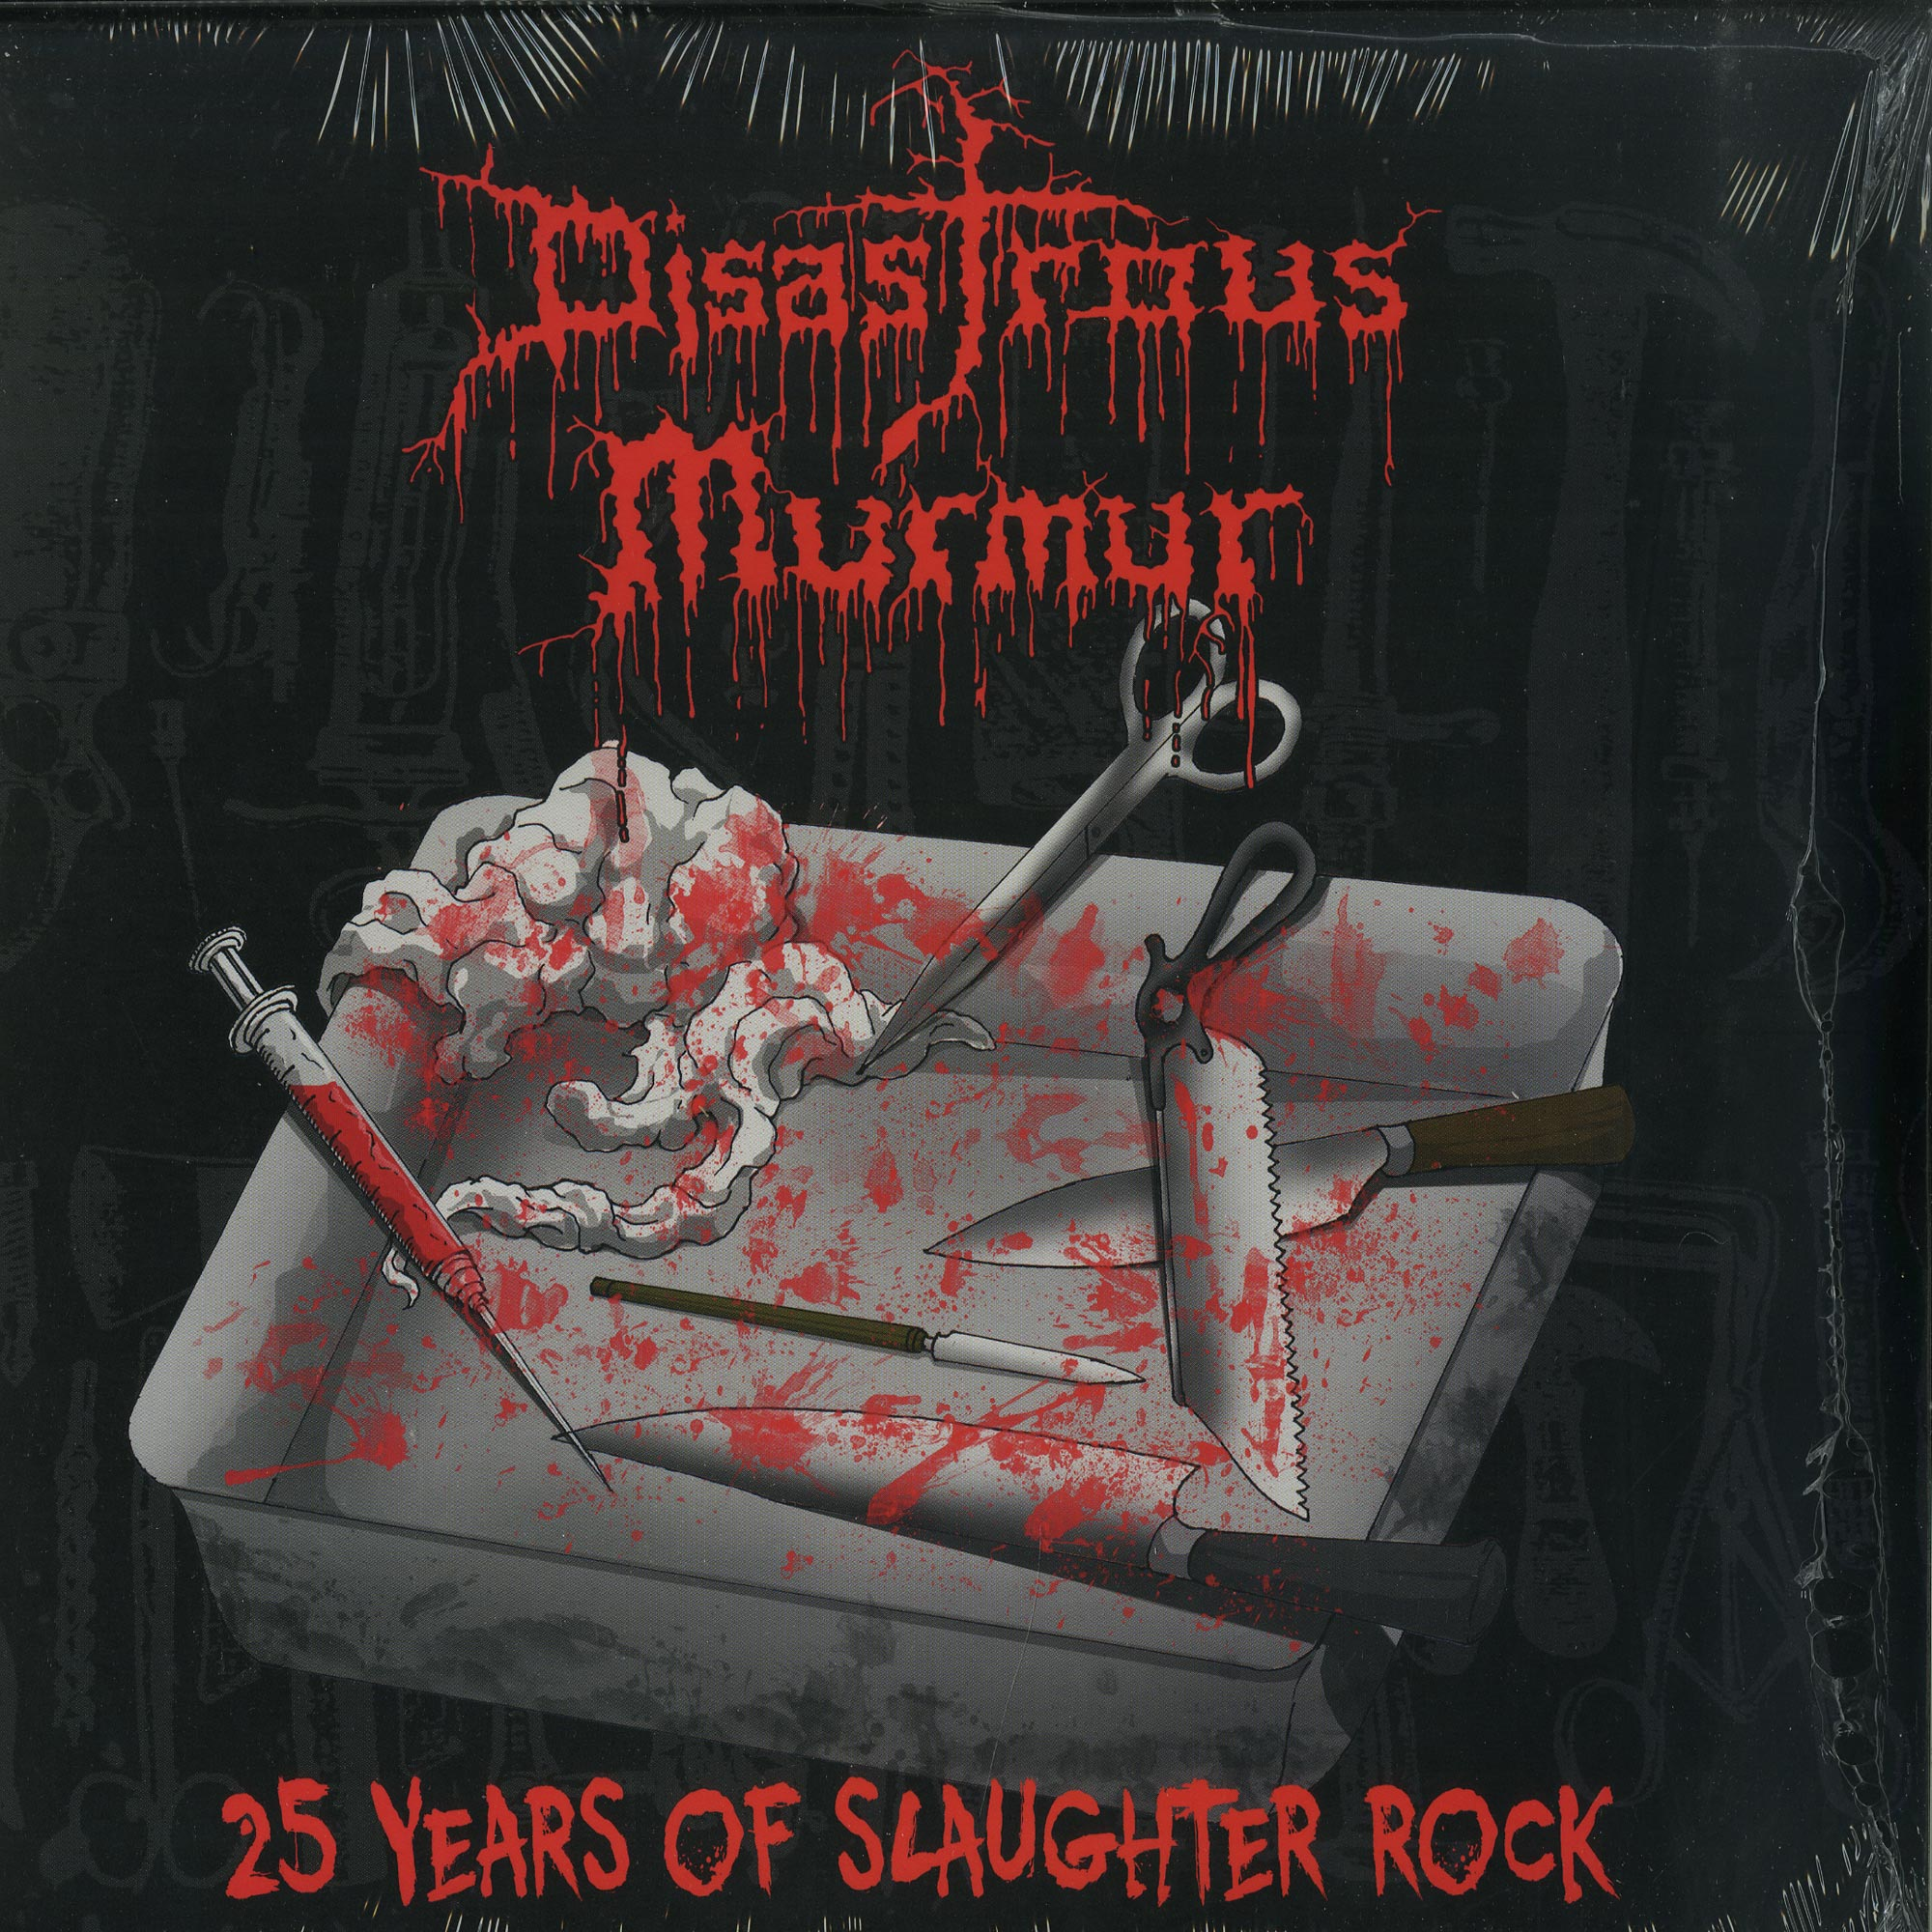 Disastrus Murmur - 25 YEARS OF SLAGHTER ROCK